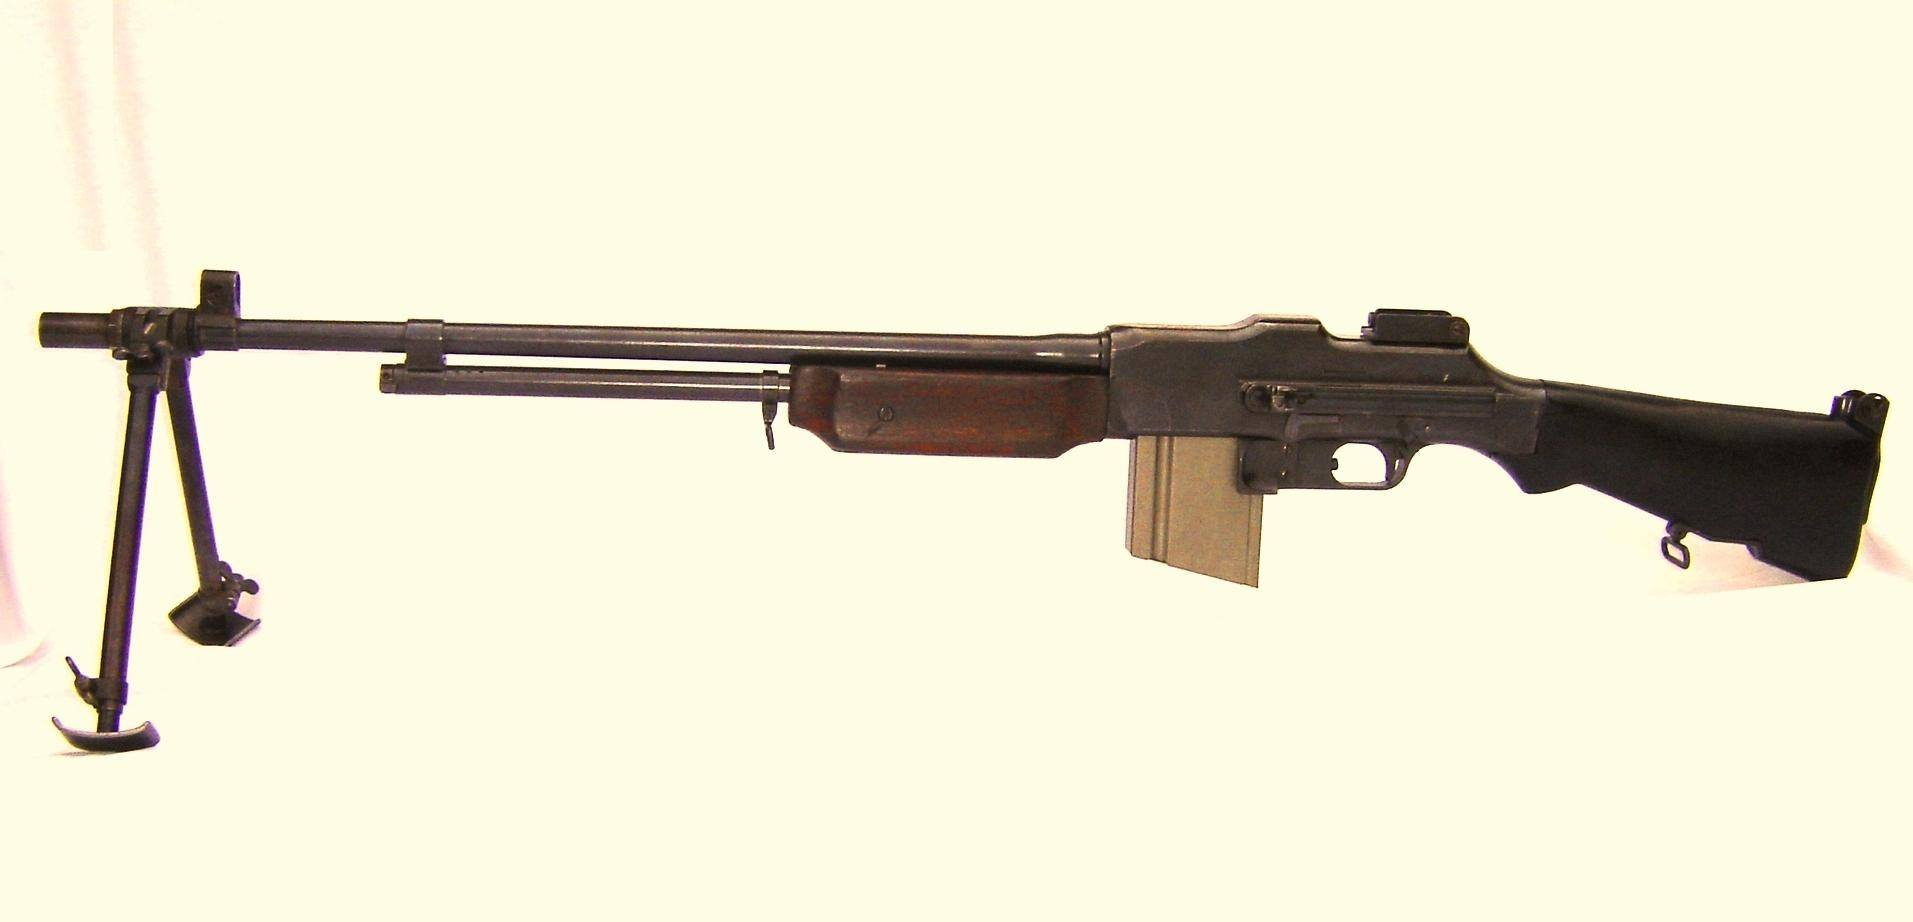 would the browning automatic rifle equipped with 30 round magazine